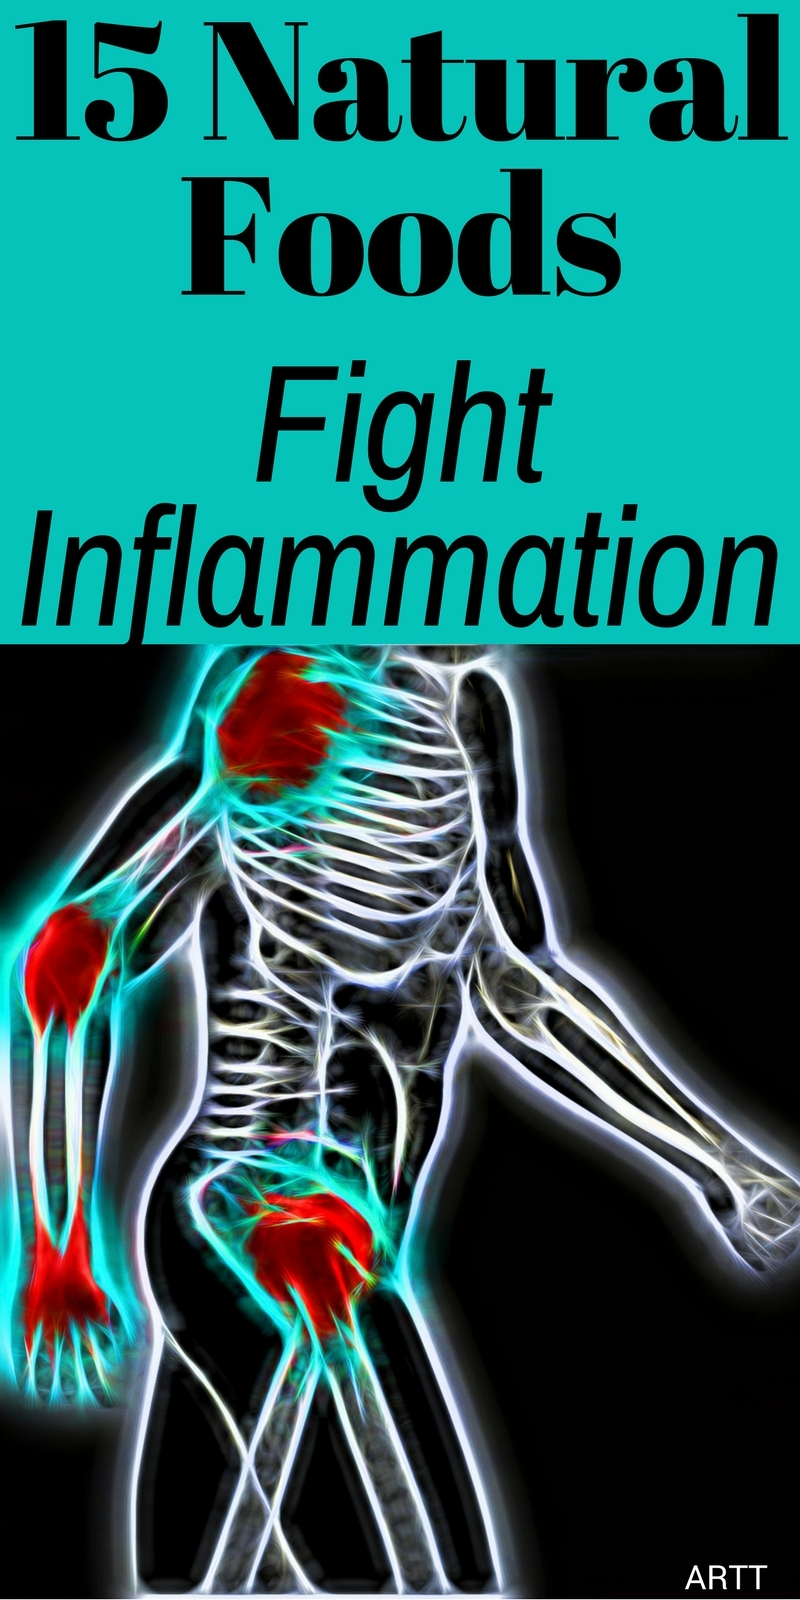 15 Natural Foods to Fight Inflammation | Reduce Inflammation with Foods Naturally | 15 Foods to Reduce Inflammation Naturally | Foods to Fight Inflammation | Reduce Inflammation | fight inflammation foods | reduce inflammation diet | arthritis inflammation | healthy lifestyle | healthy lifestyle tips | healthy lifestyle motivation | healthy lifestyle changes | healthy lifestyle tips for teens | healthy lifestyle tips motivation | healthy lifestyle tips feel better | aroadtotravel.com